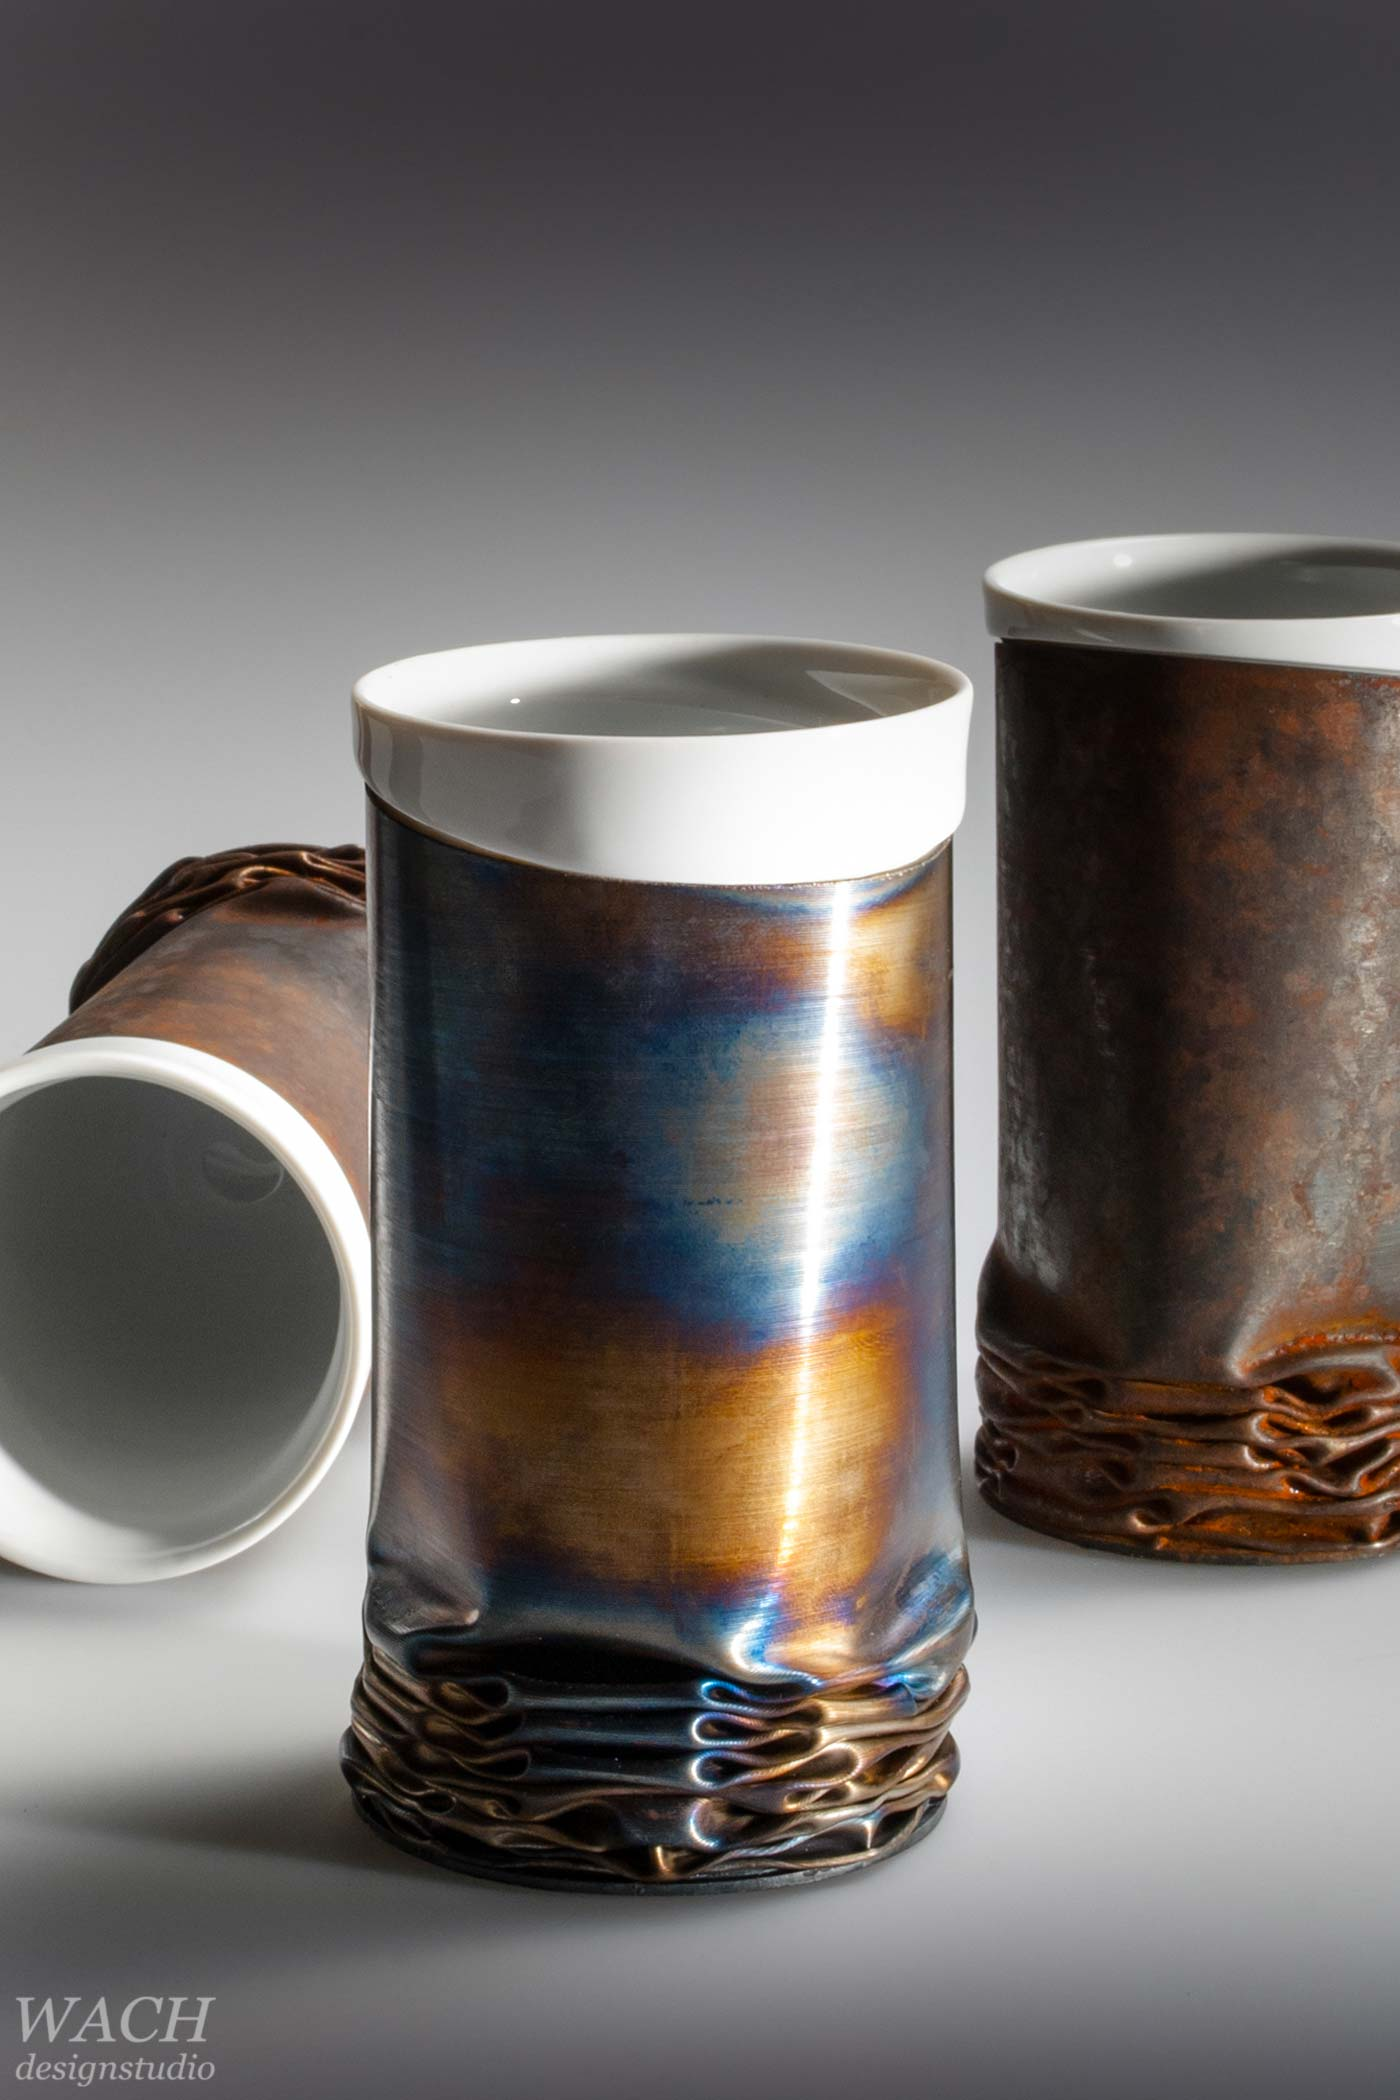 Rust Cup designed by WACH designstudio